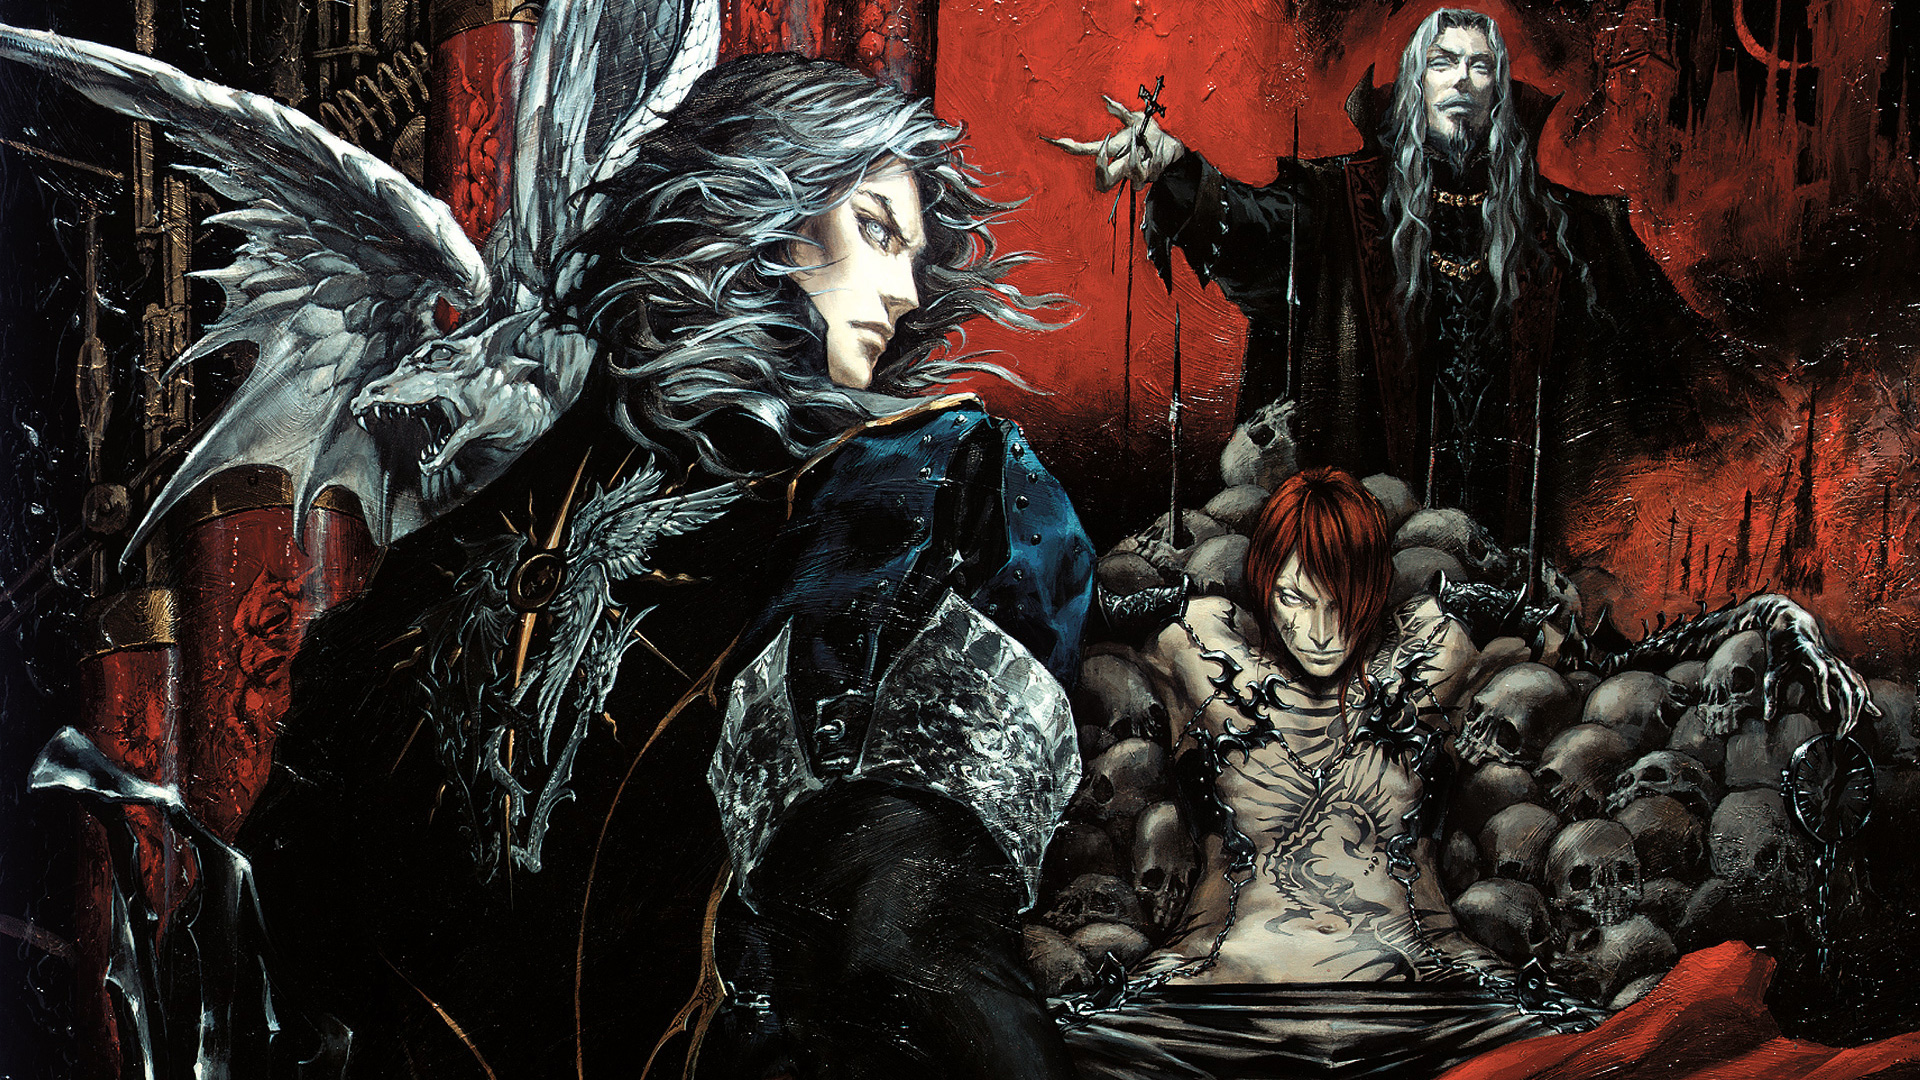 Free Castlevania: Curse of Darkness Wallpaper in 1920x1080